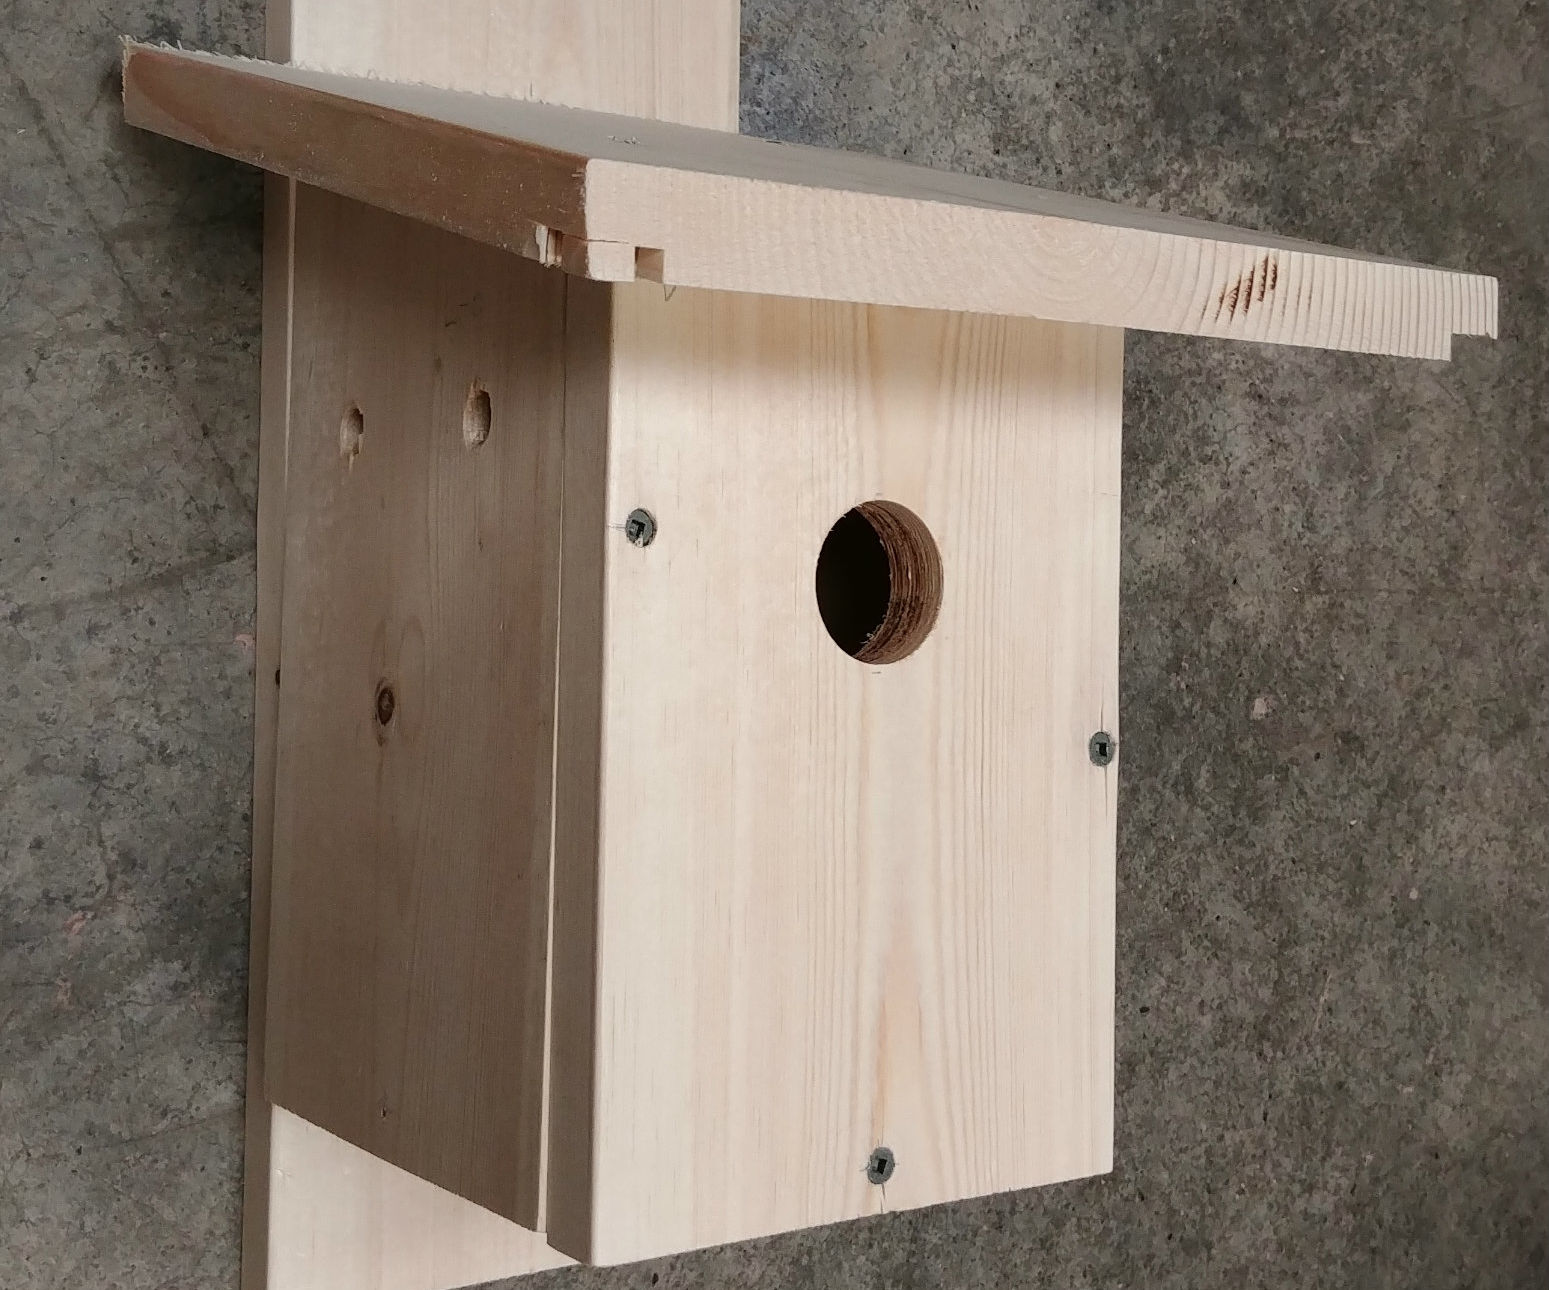 How to Make a Nest Box for Birds